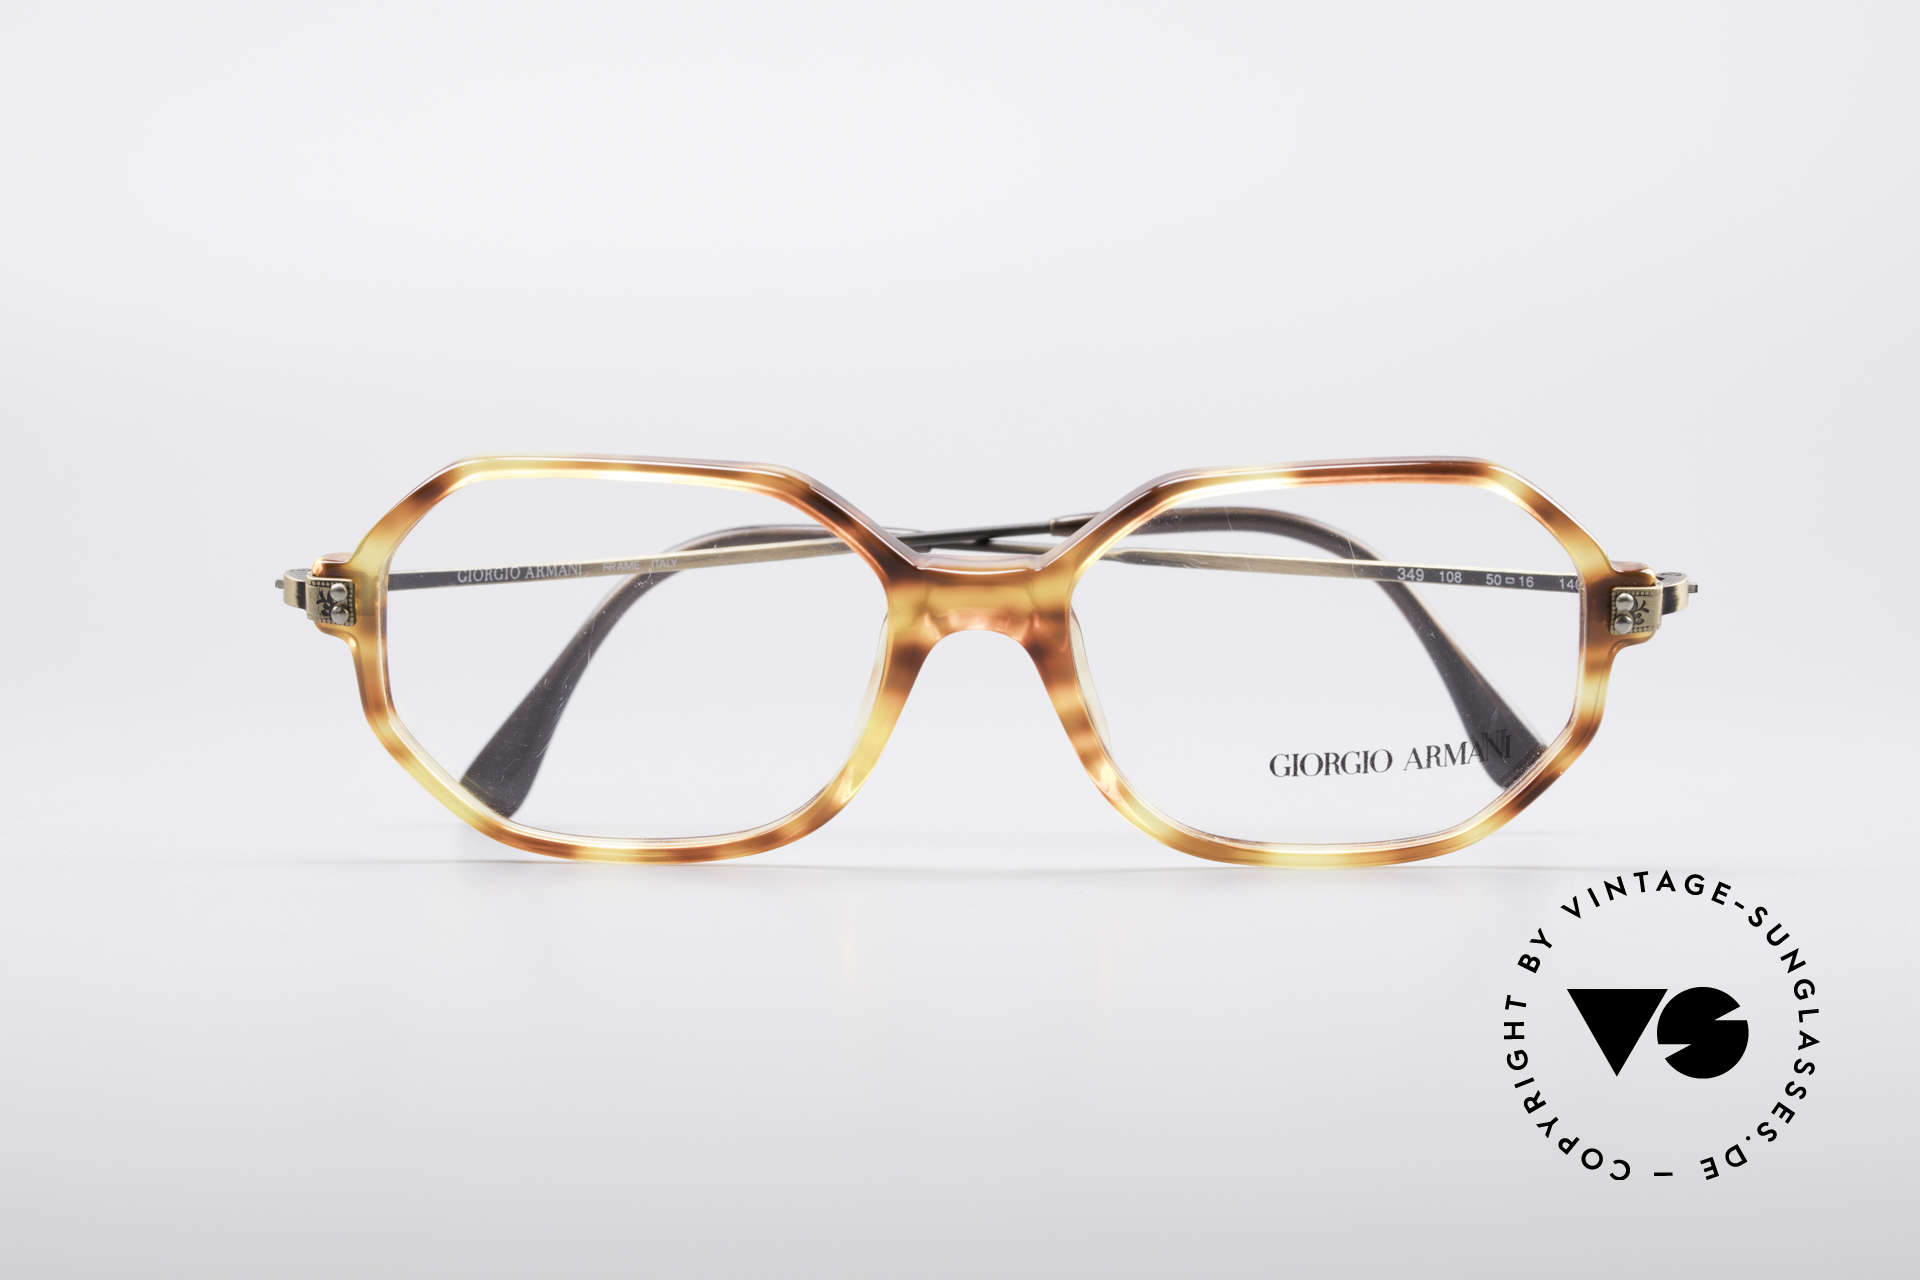 Giorgio Armani 349 No Retro Glasses Vintage Frame, the clear DEMO lenses can be glazed optionally, Made for Men and Women